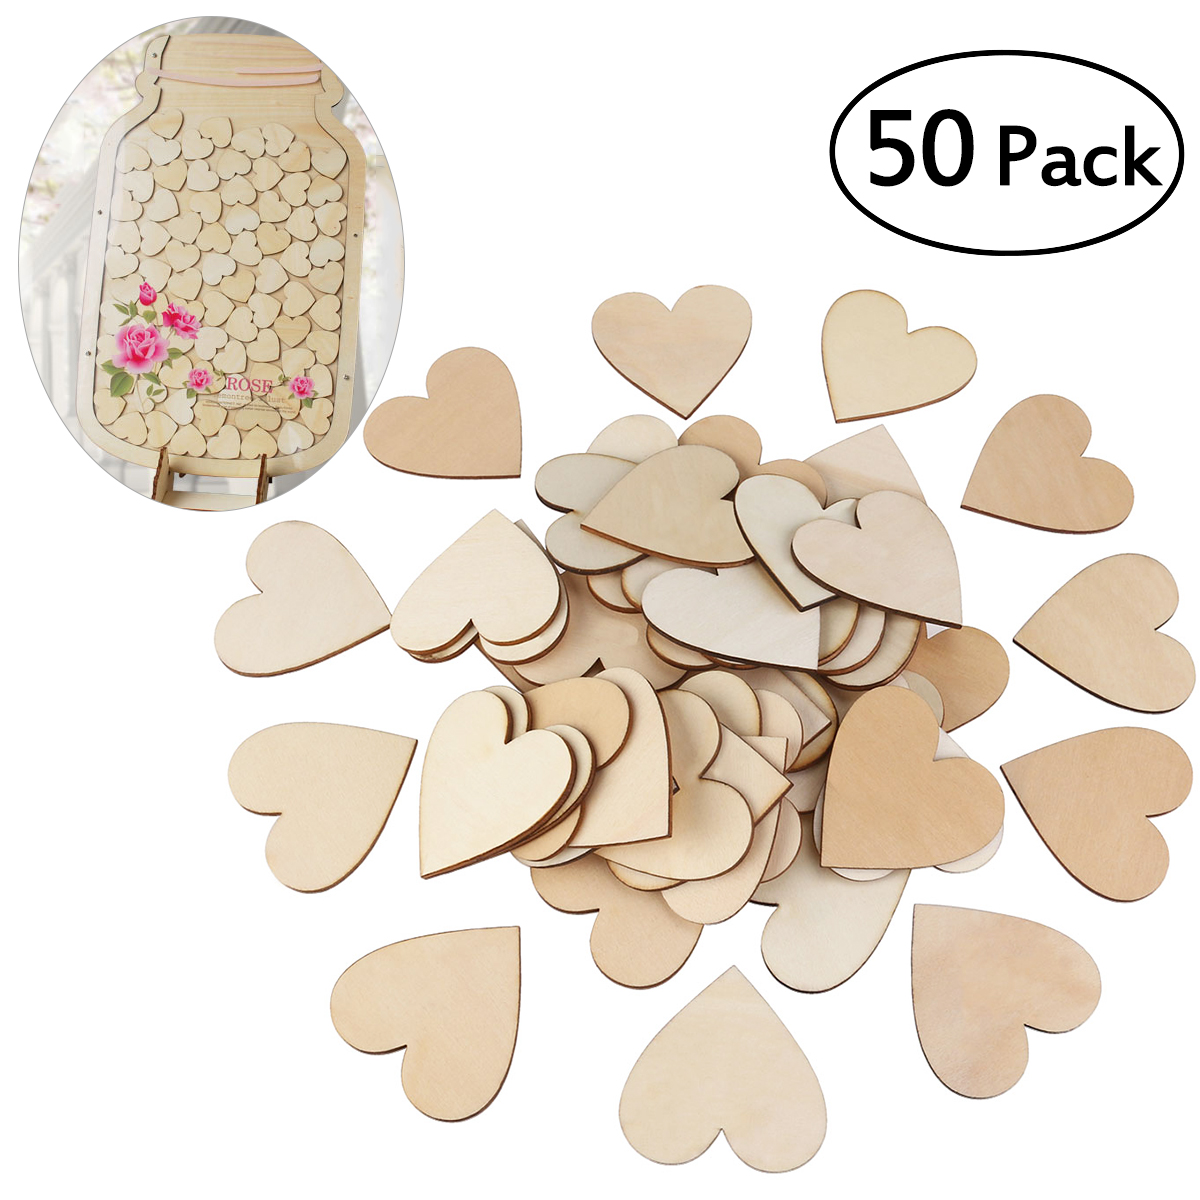 50pcs Blank Wooden Heart Shapes Craft Slices Discs Wedding